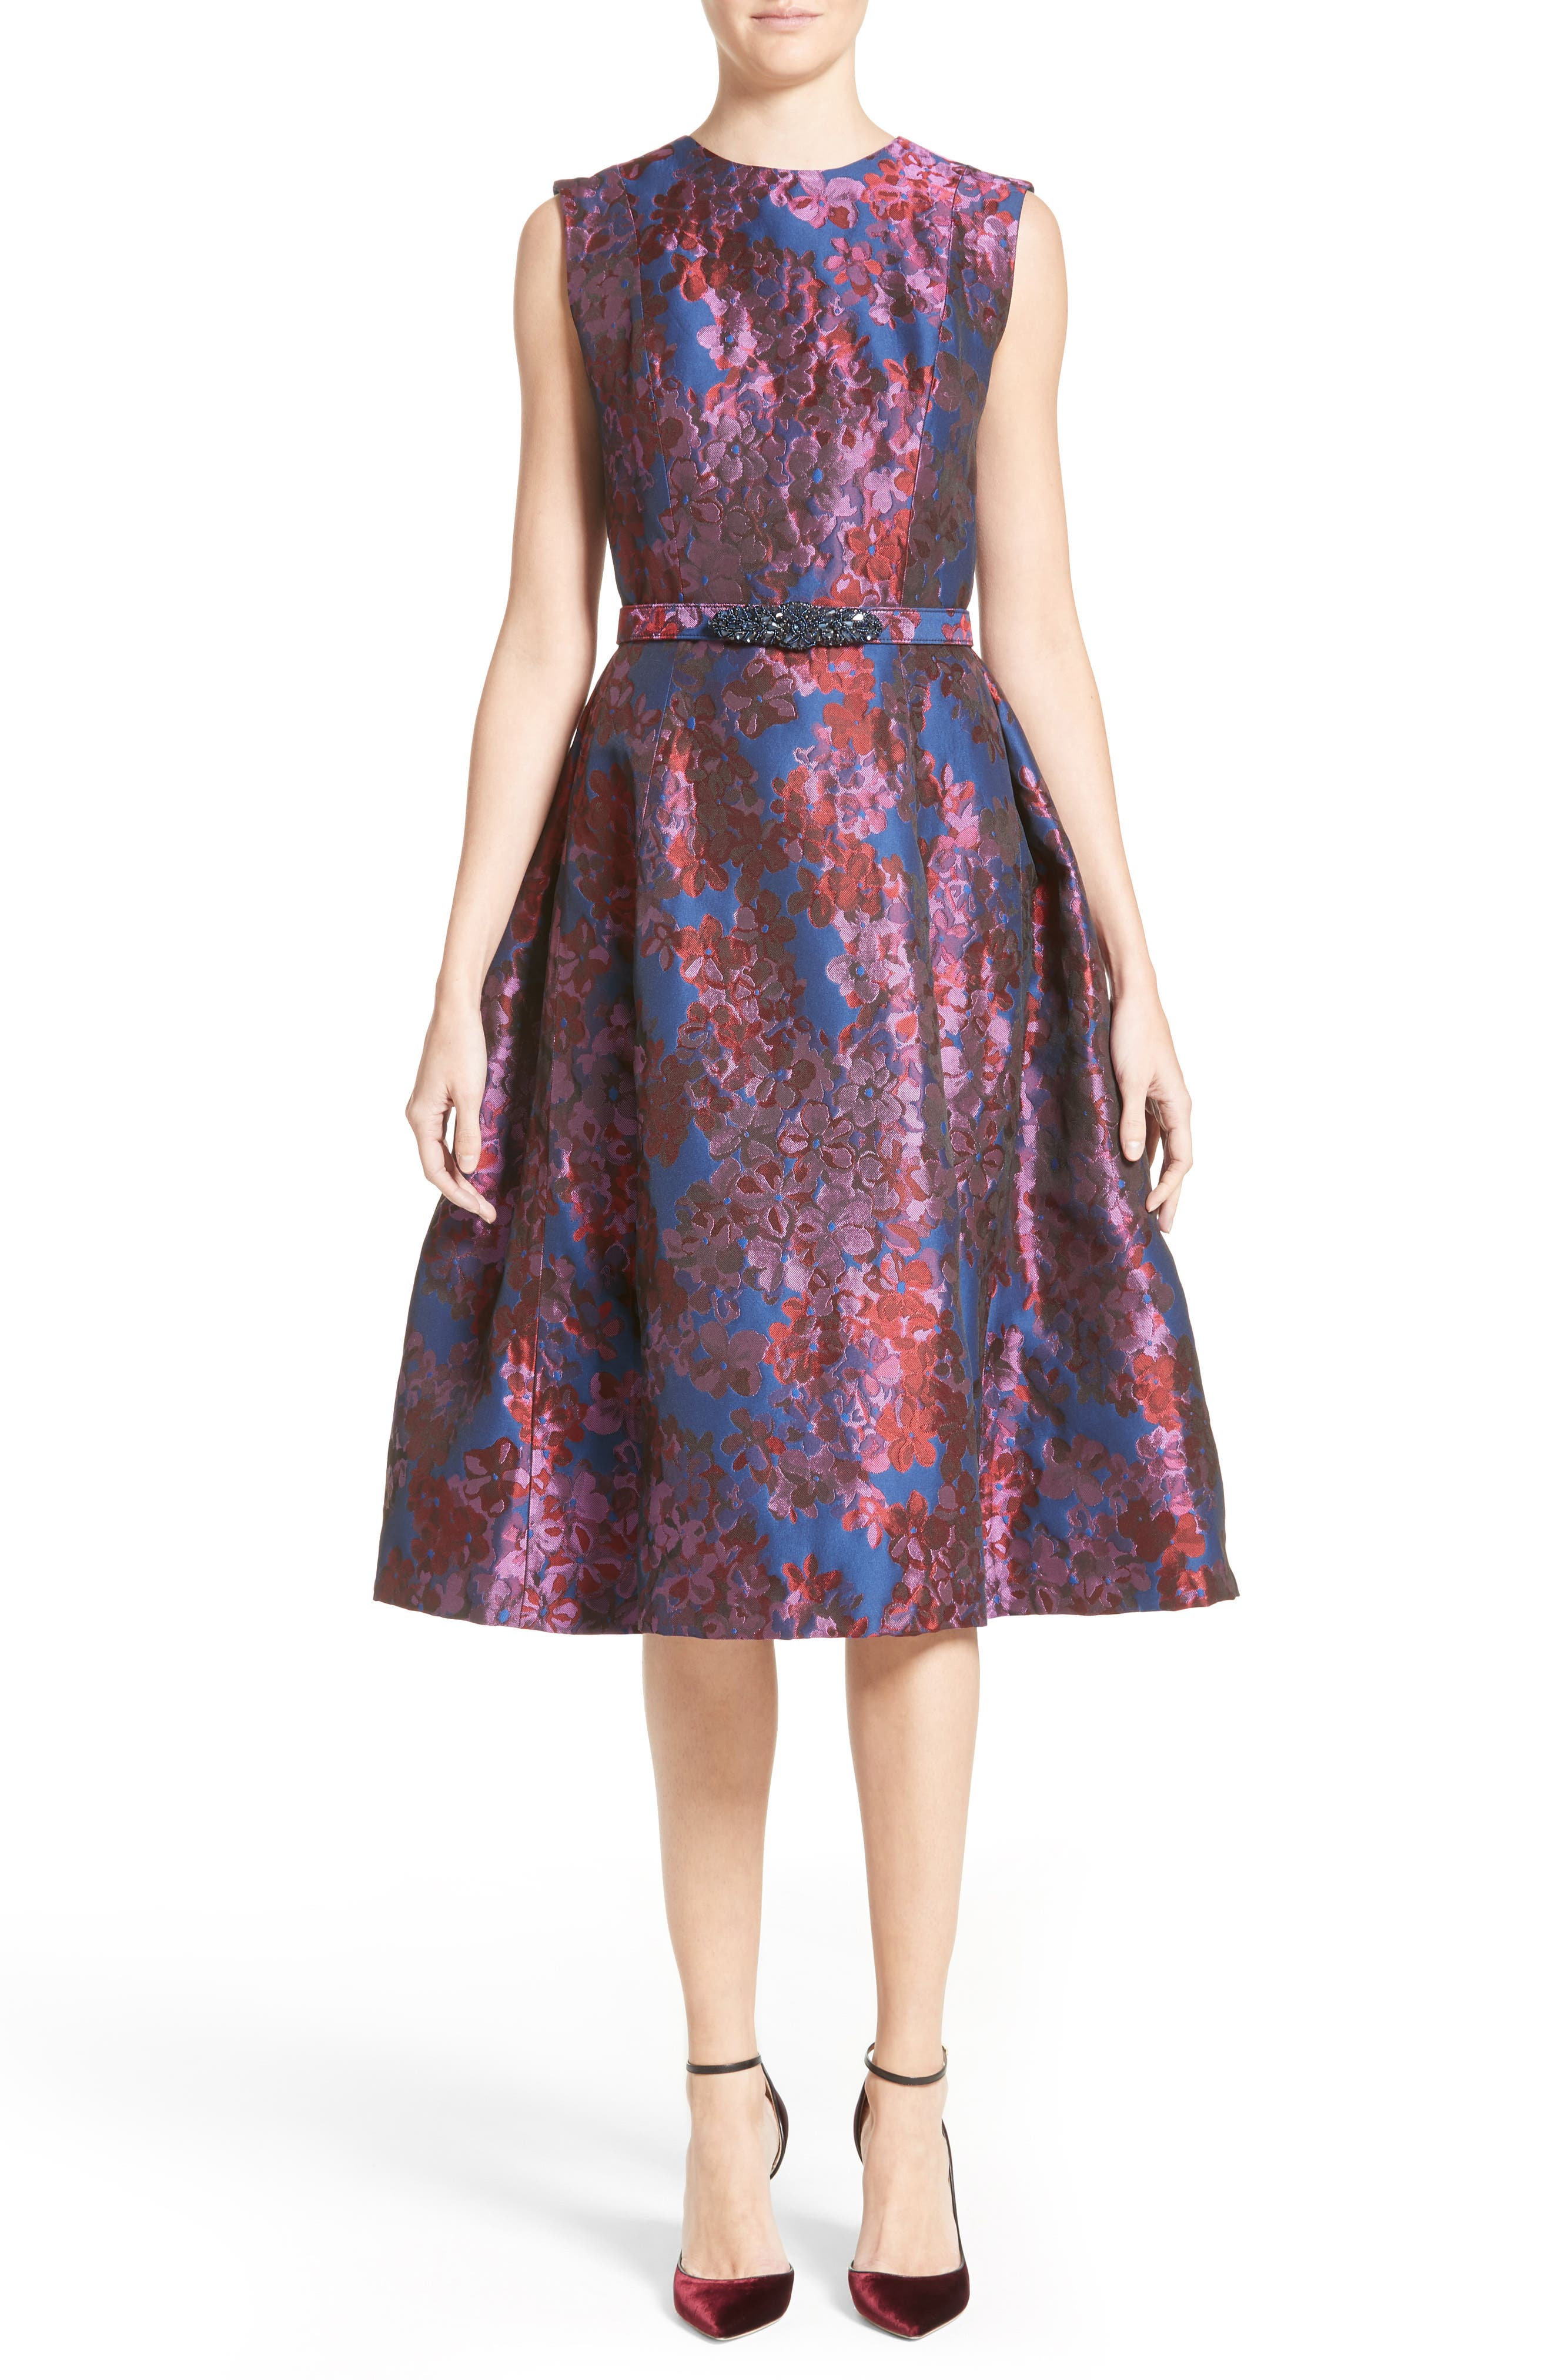 Main Image - Badgley Mischka Couture Floral Jacquard Fit & Flare Dress (Nordstrom Exclusive)